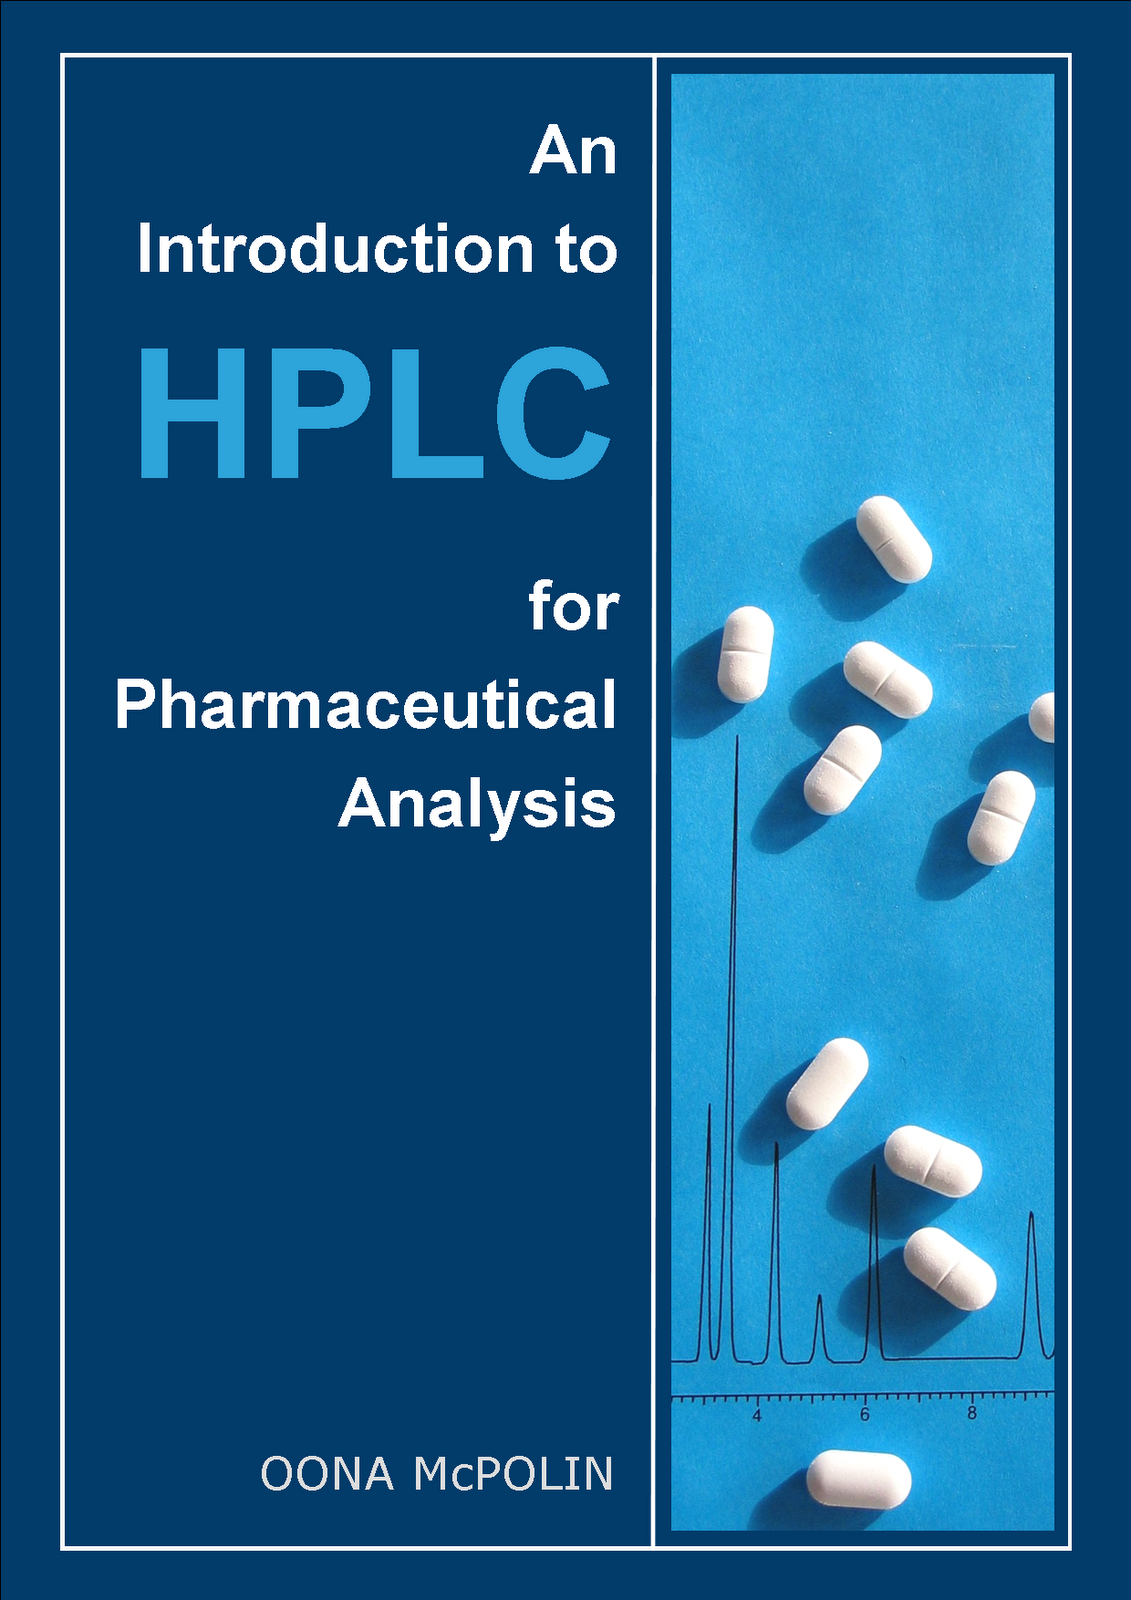 Book: An Introduction to HPLC for Pharmaceutical Analysis